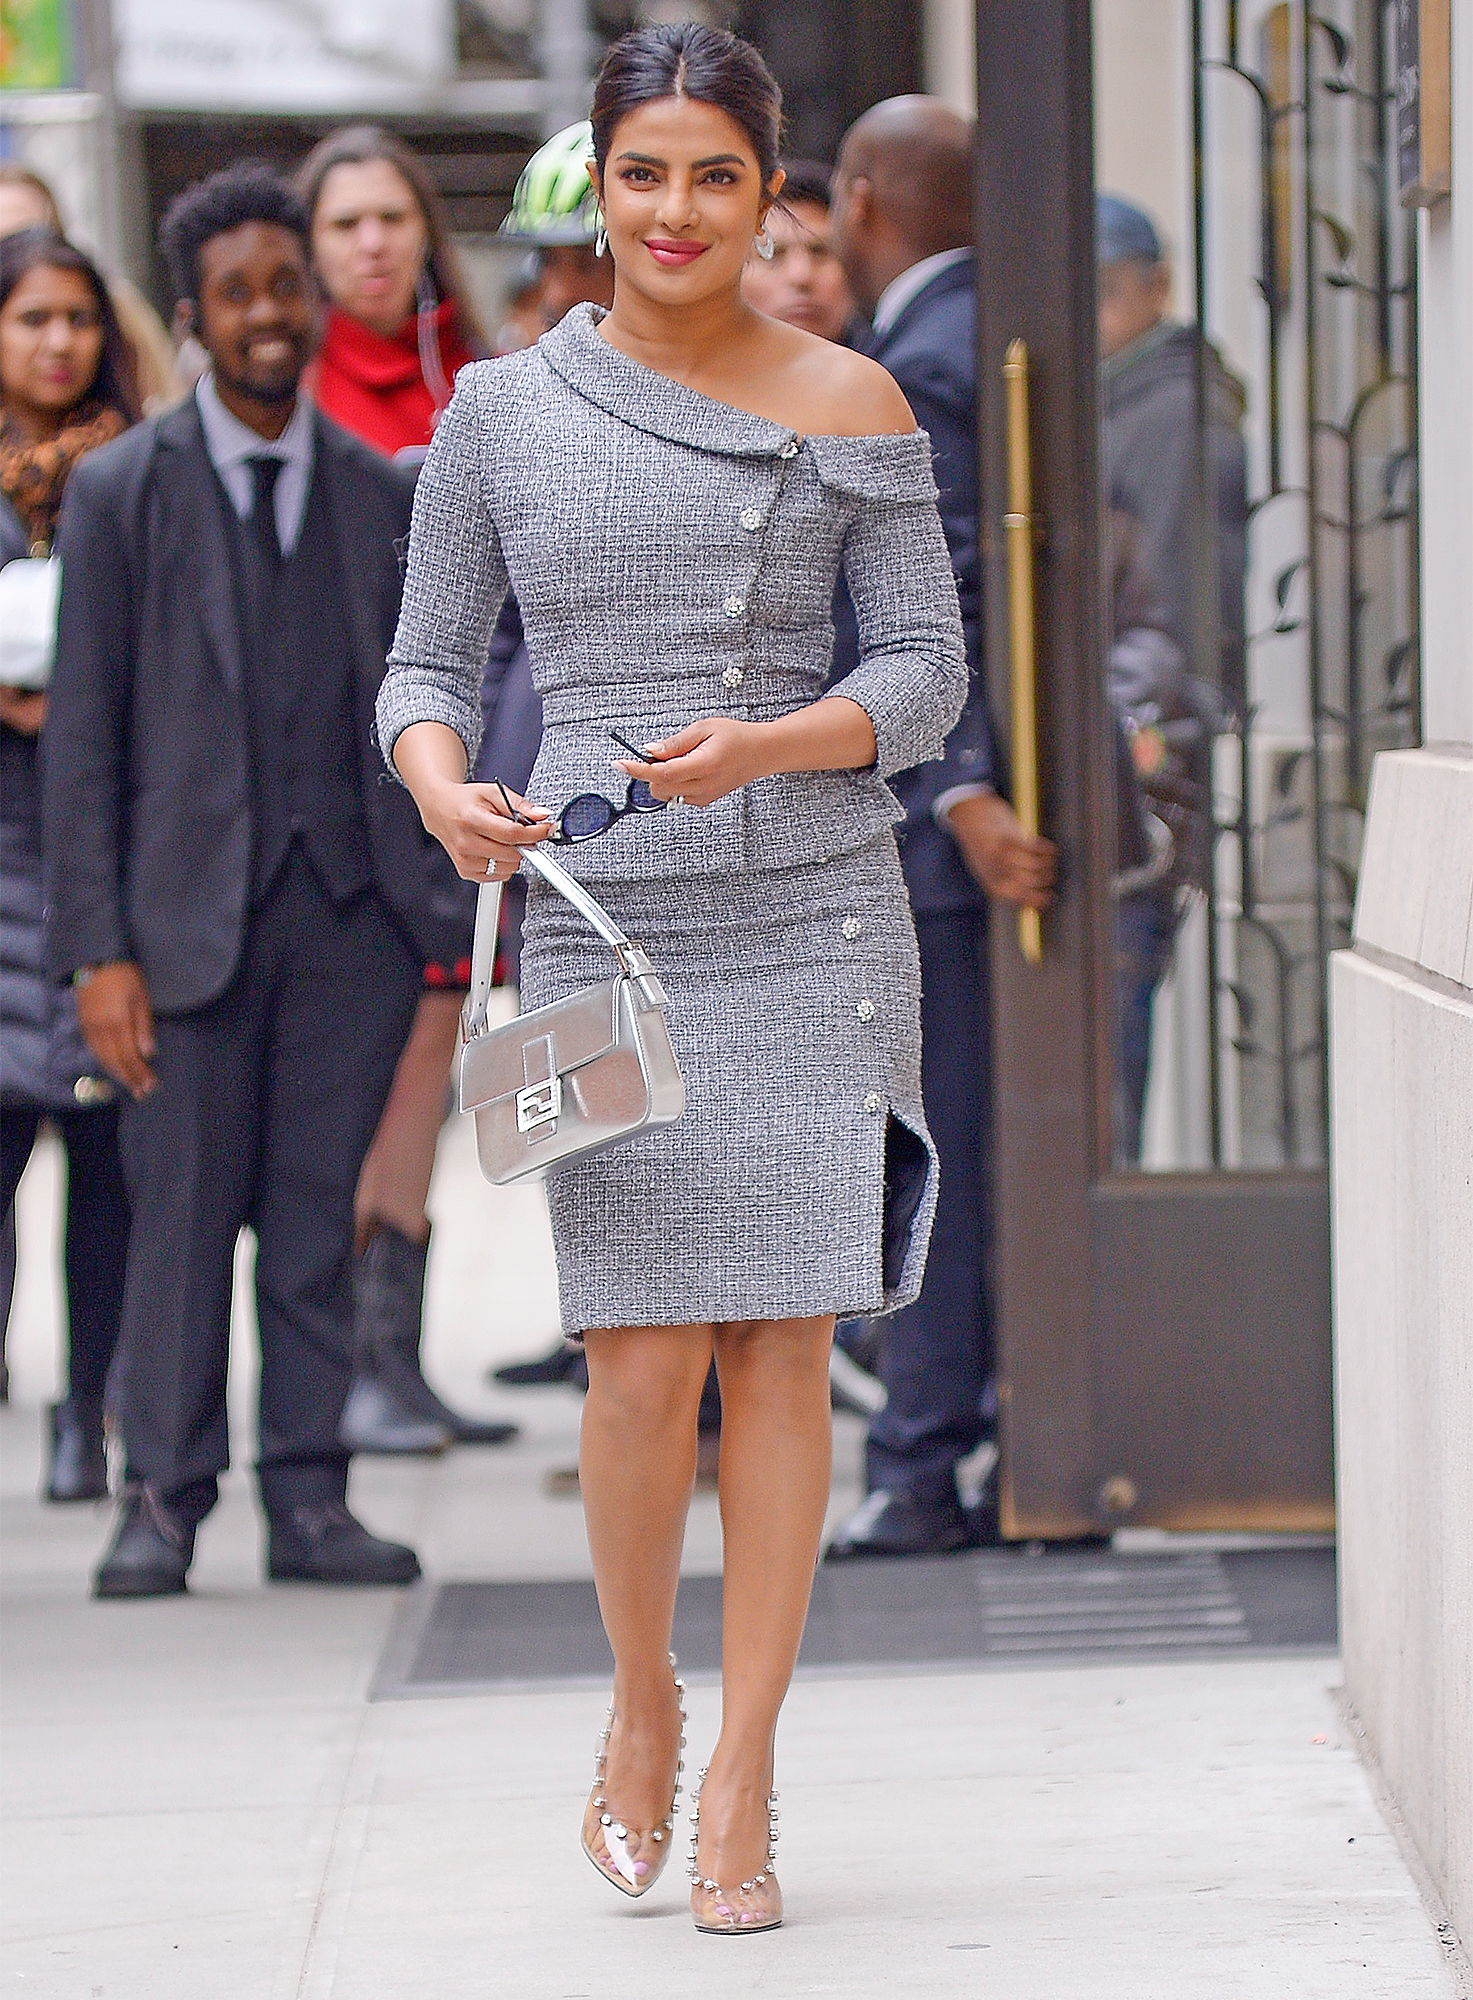 Priyanka Chopra wears a body hugginhg assymetrical dress and silver bag while heading to Women In The World summit in New York CIty